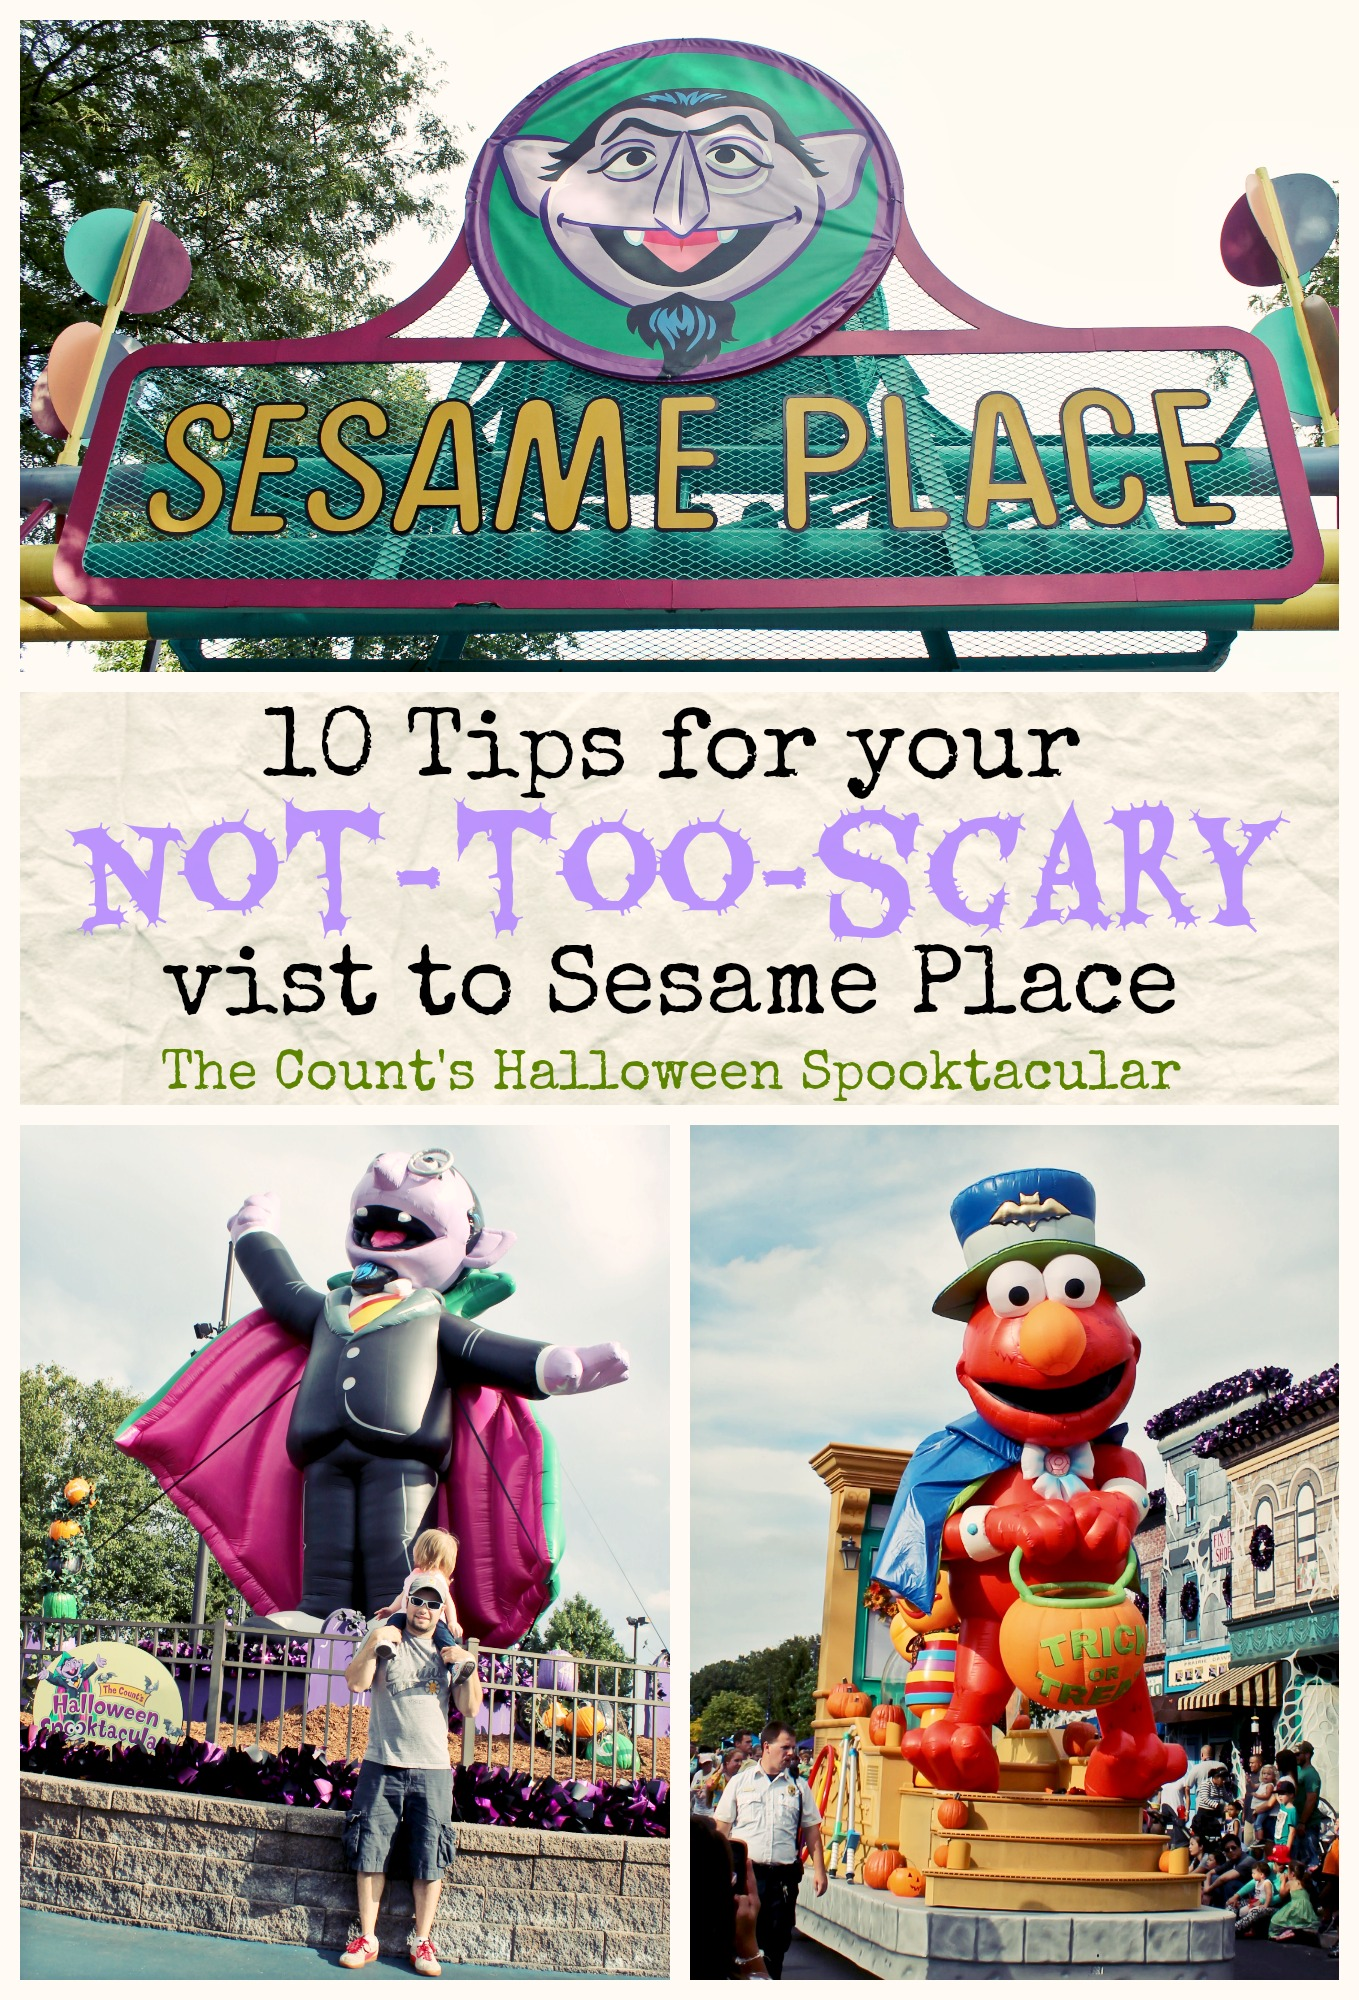 10 Tips for your Visit to Sesame Place and The Count's Halloween Spooktacular! #sesameplace #travel #familytravel